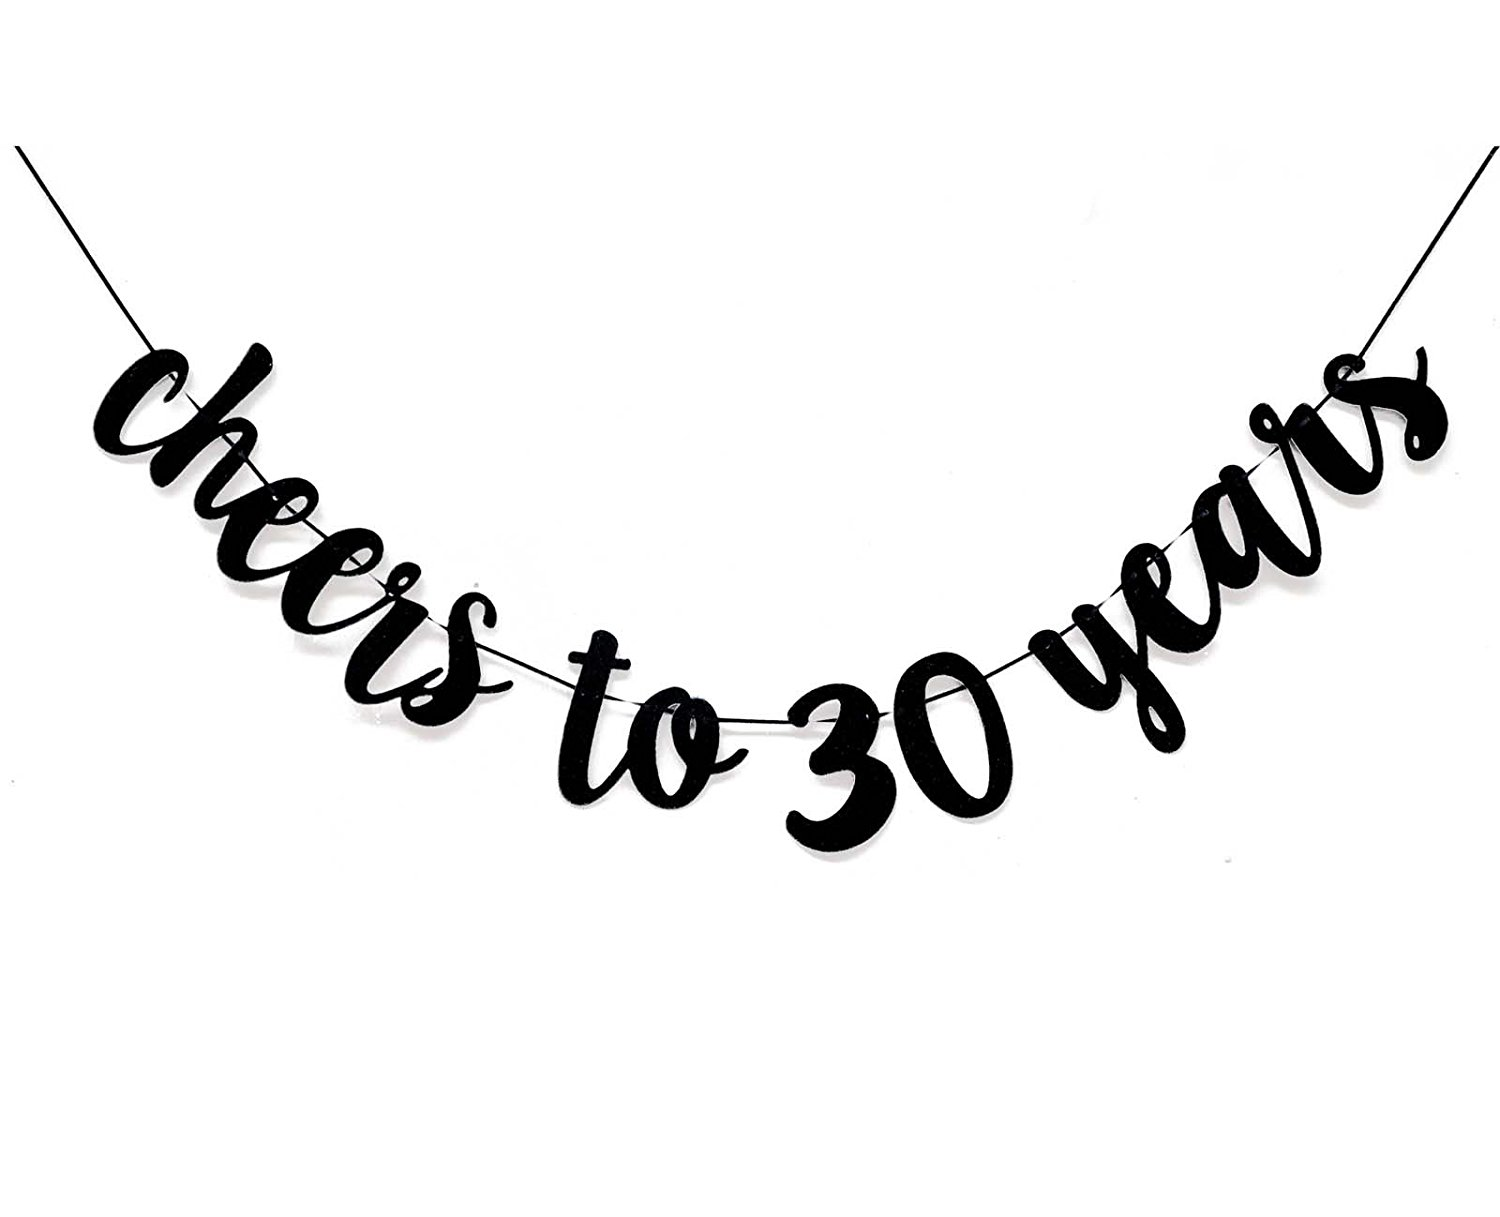 30th birthday banner clipart image black and white stock Black Cheers to 30 Years Banner for 30th Birthday Party Decorations image black and white stock